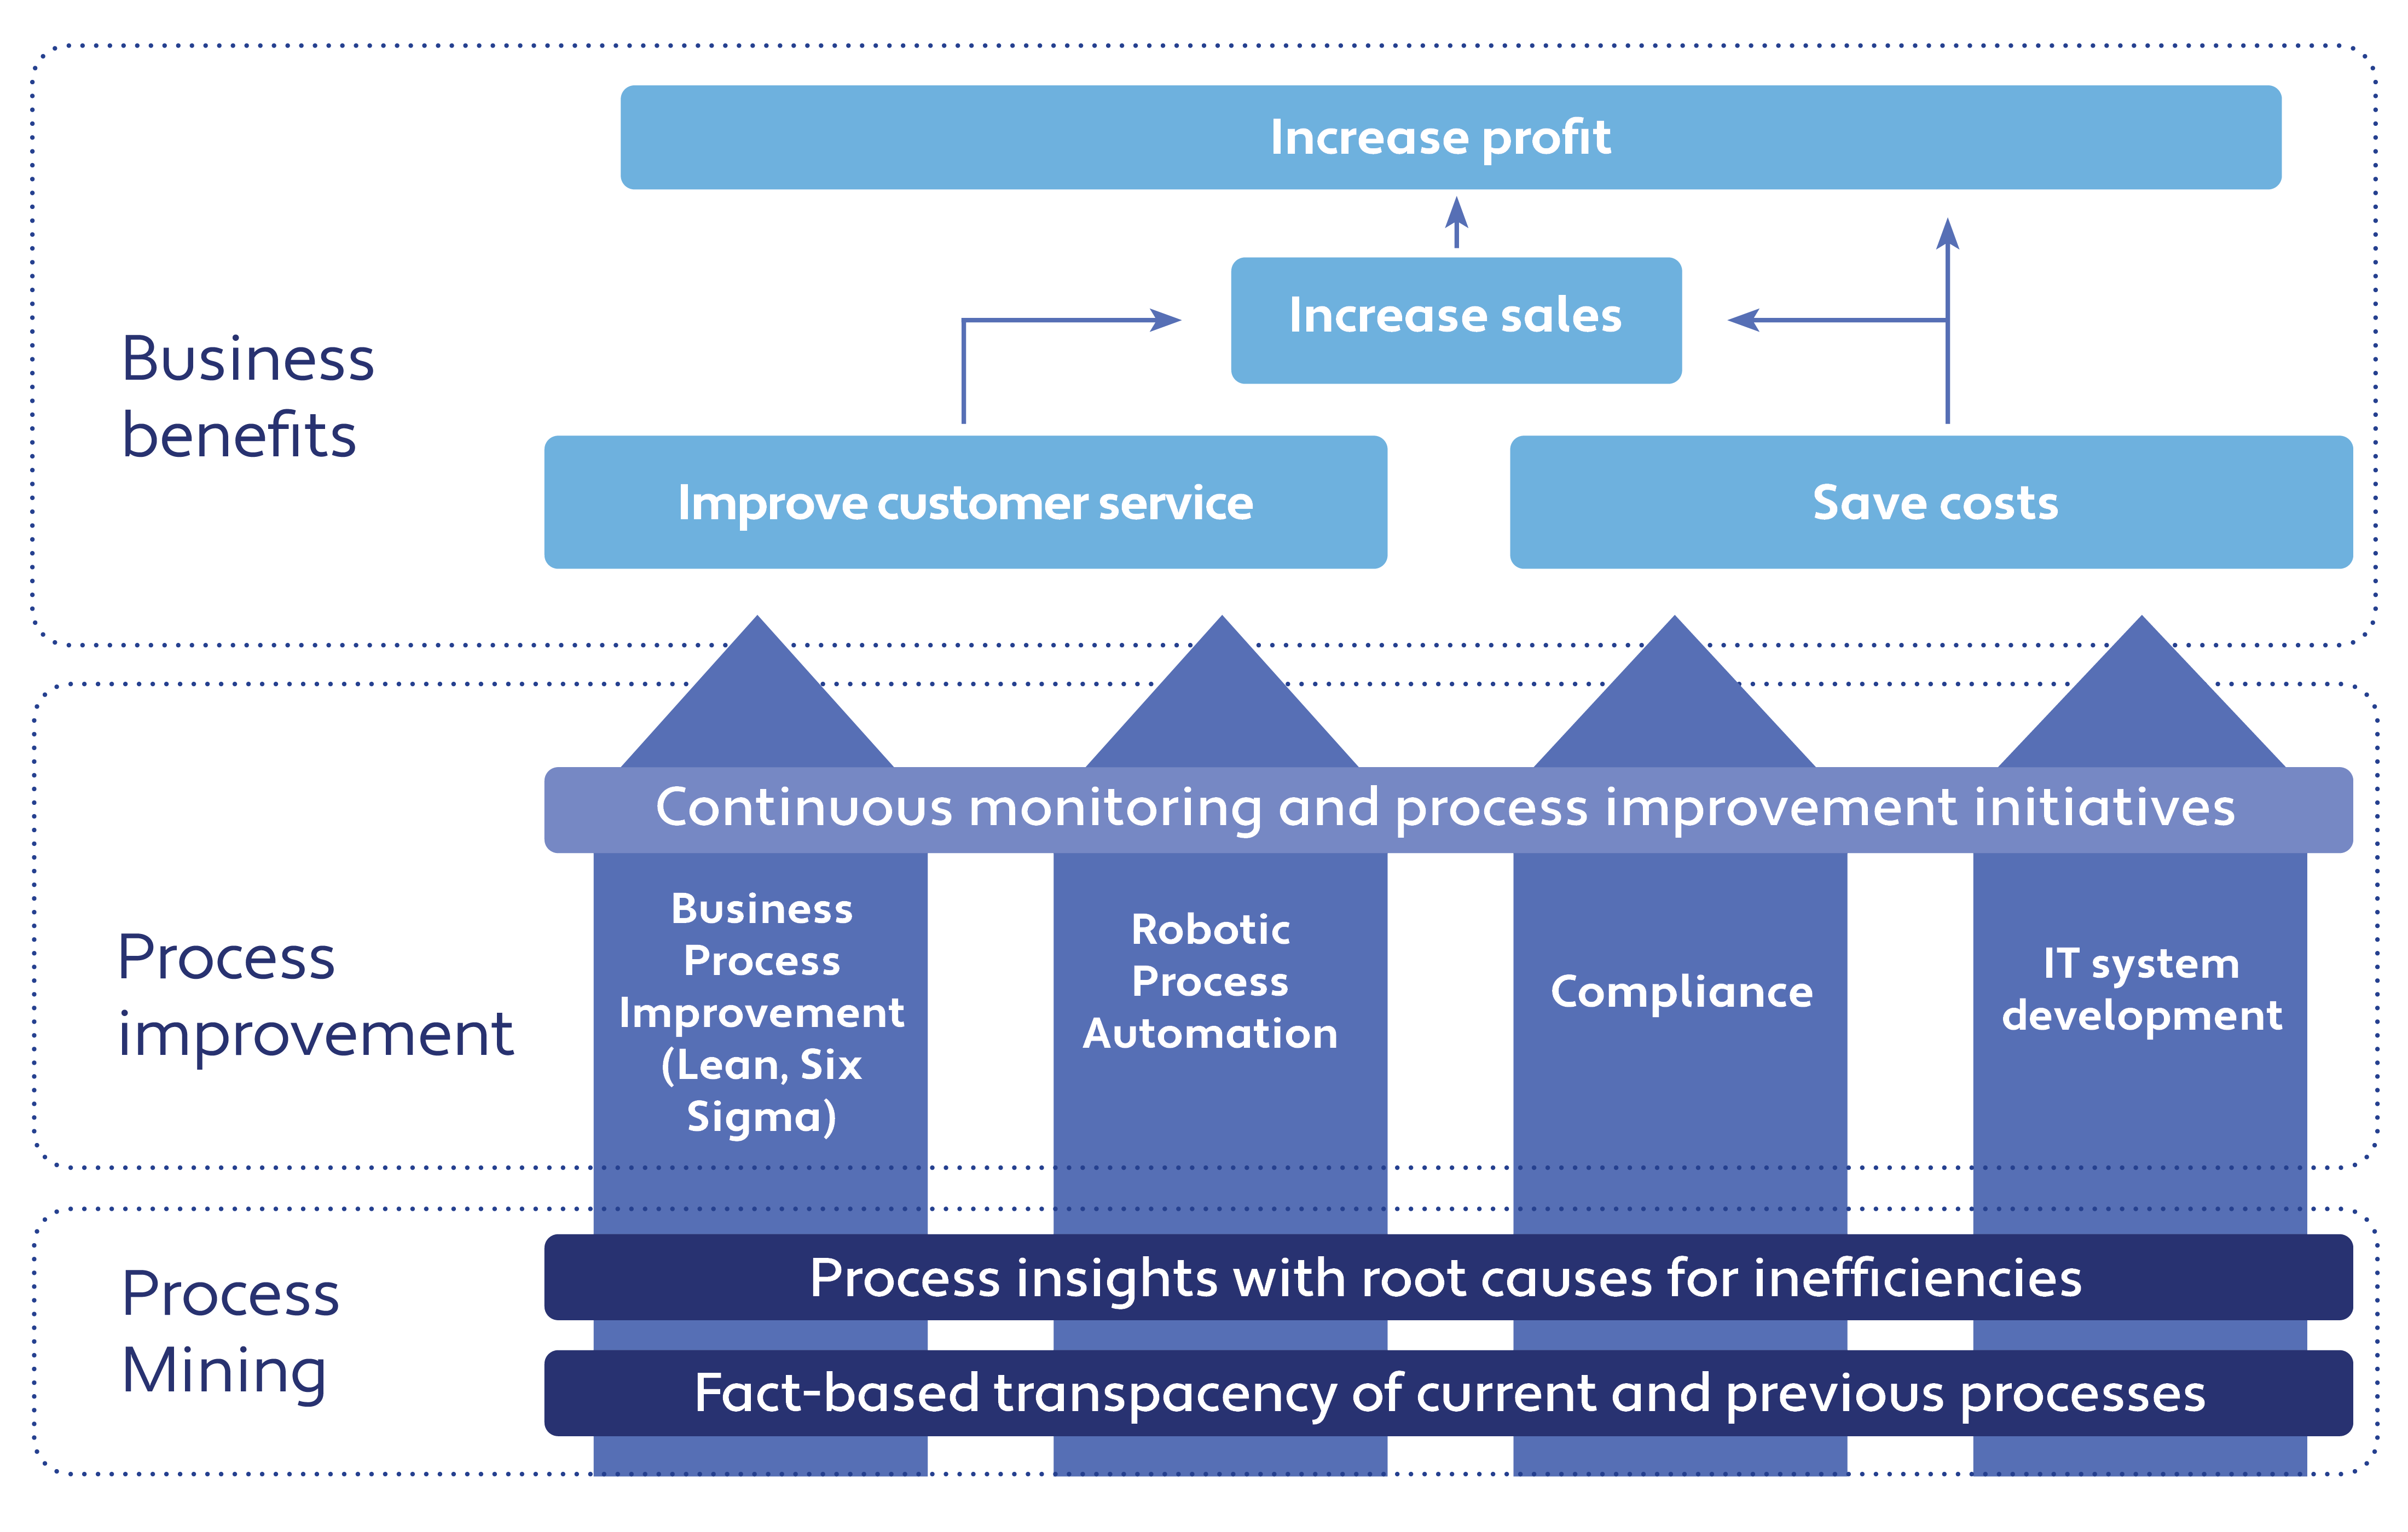 Value creation with process mining